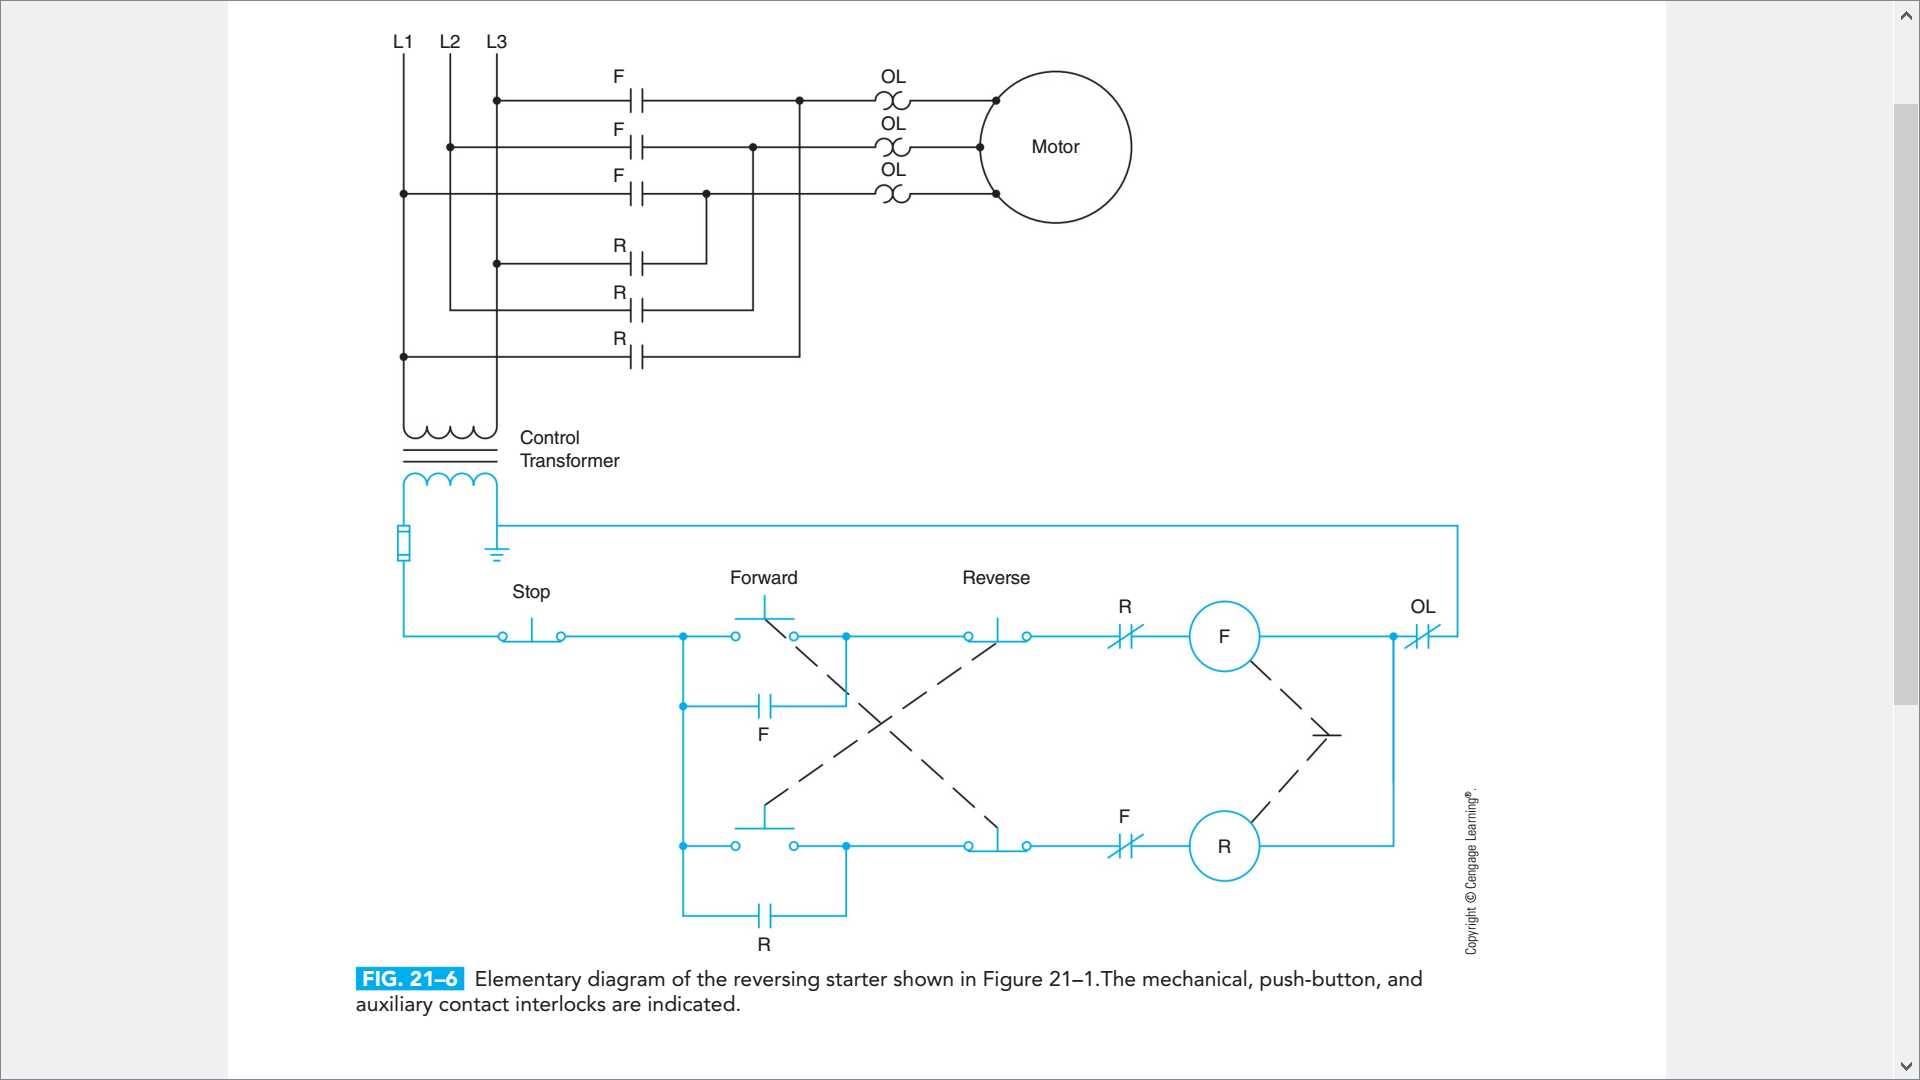 L1 L2 L3 OL OL Motor OL R, Control Transformer Forward Reverse Stop OL R R FIG. 21-6 Elementary diagram of the reversing starter shown in Figure 21-1.The mechanical, push-button, and auxiliary contact interlocks are indicated. Copyright © Cengage Learning®.